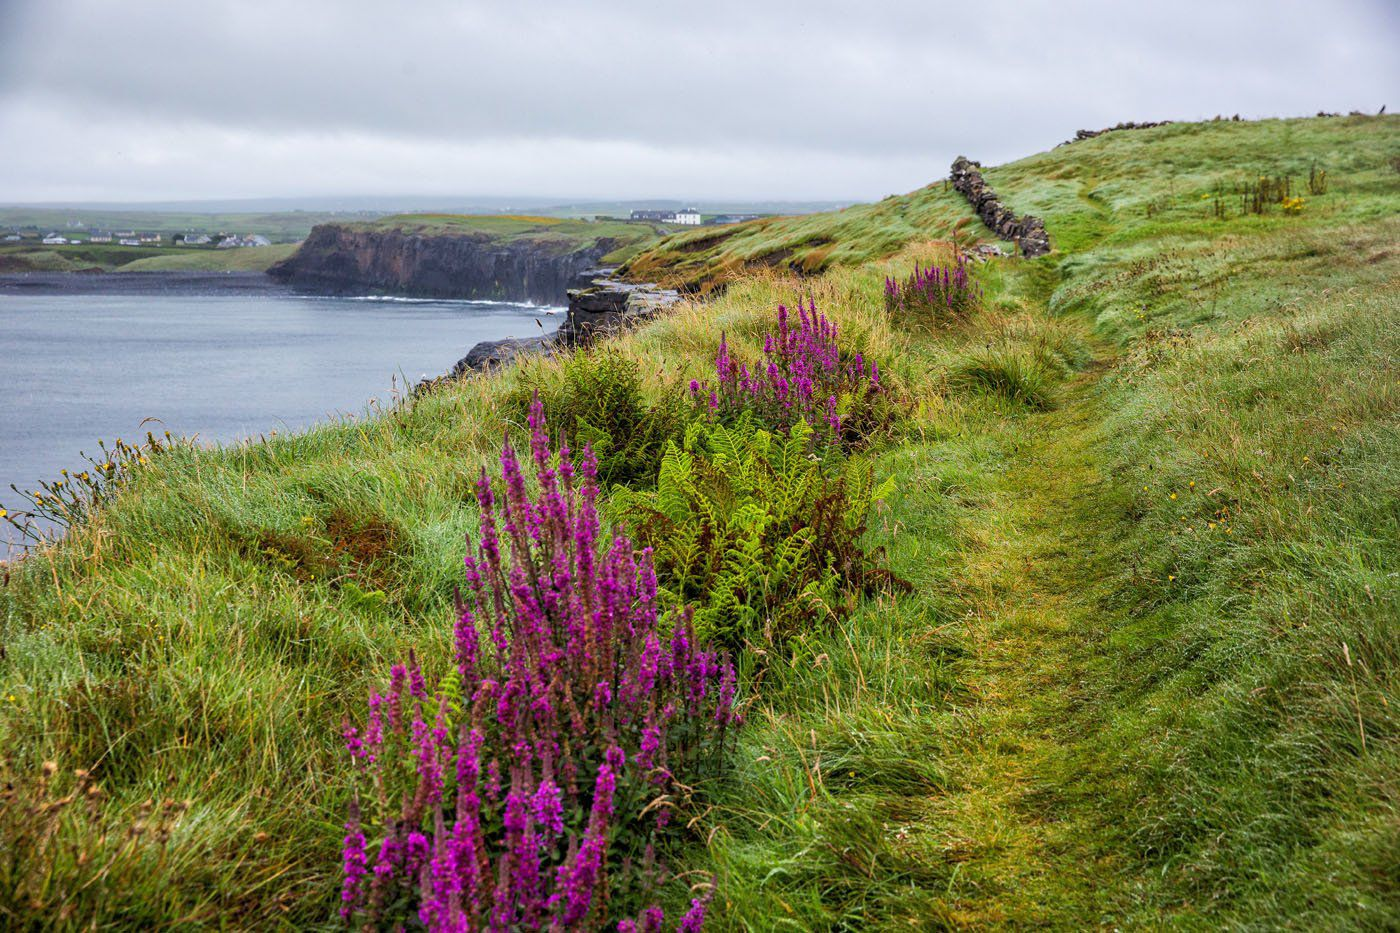 Walking the Cliffs of Moher from Doolin